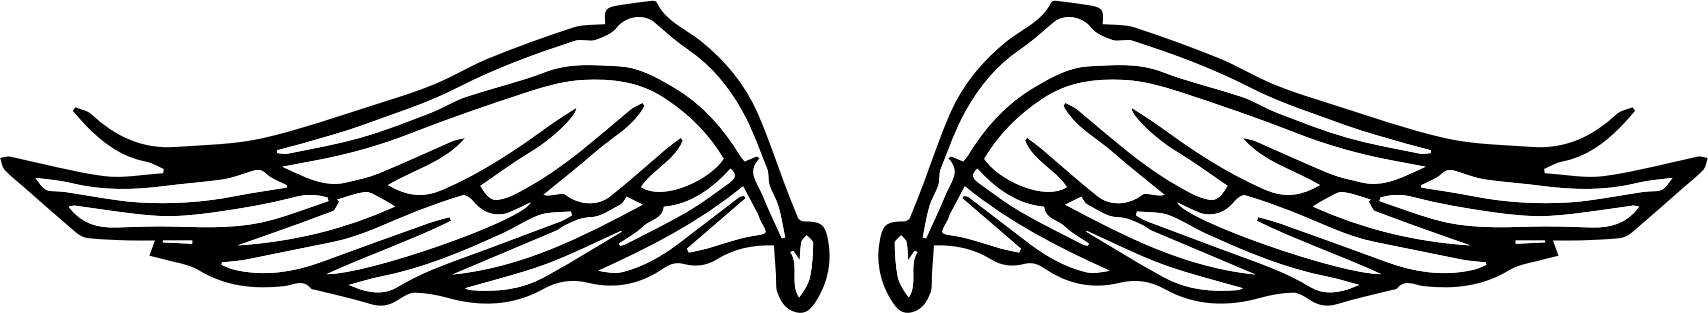 Png doodle. Raseone wings icons free